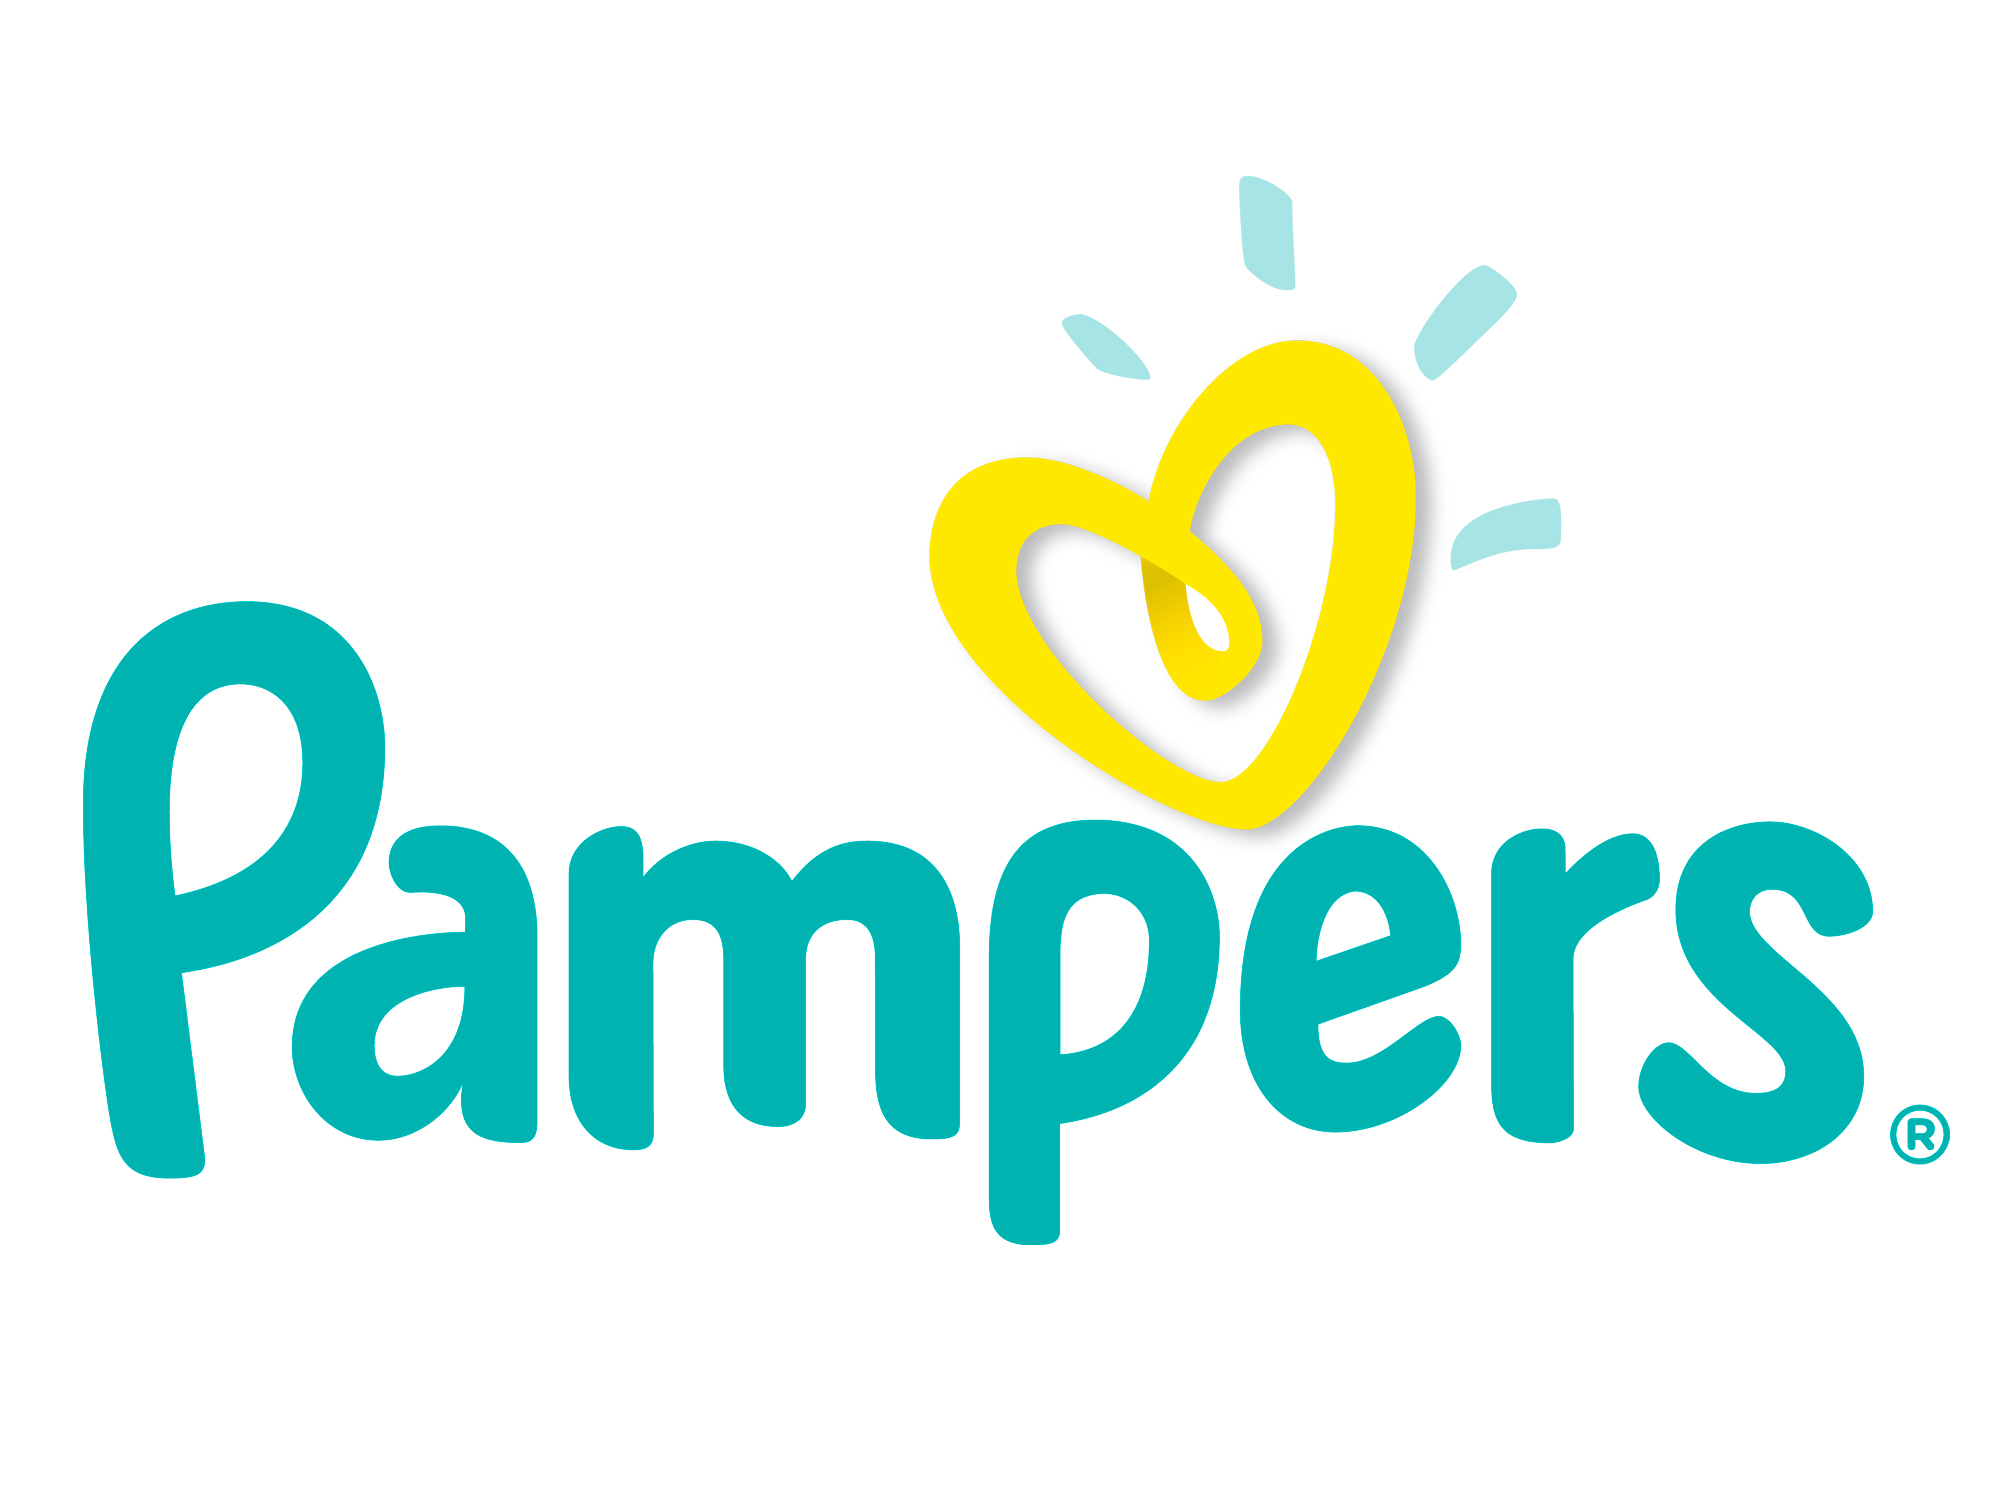 pampers-logo-png-download